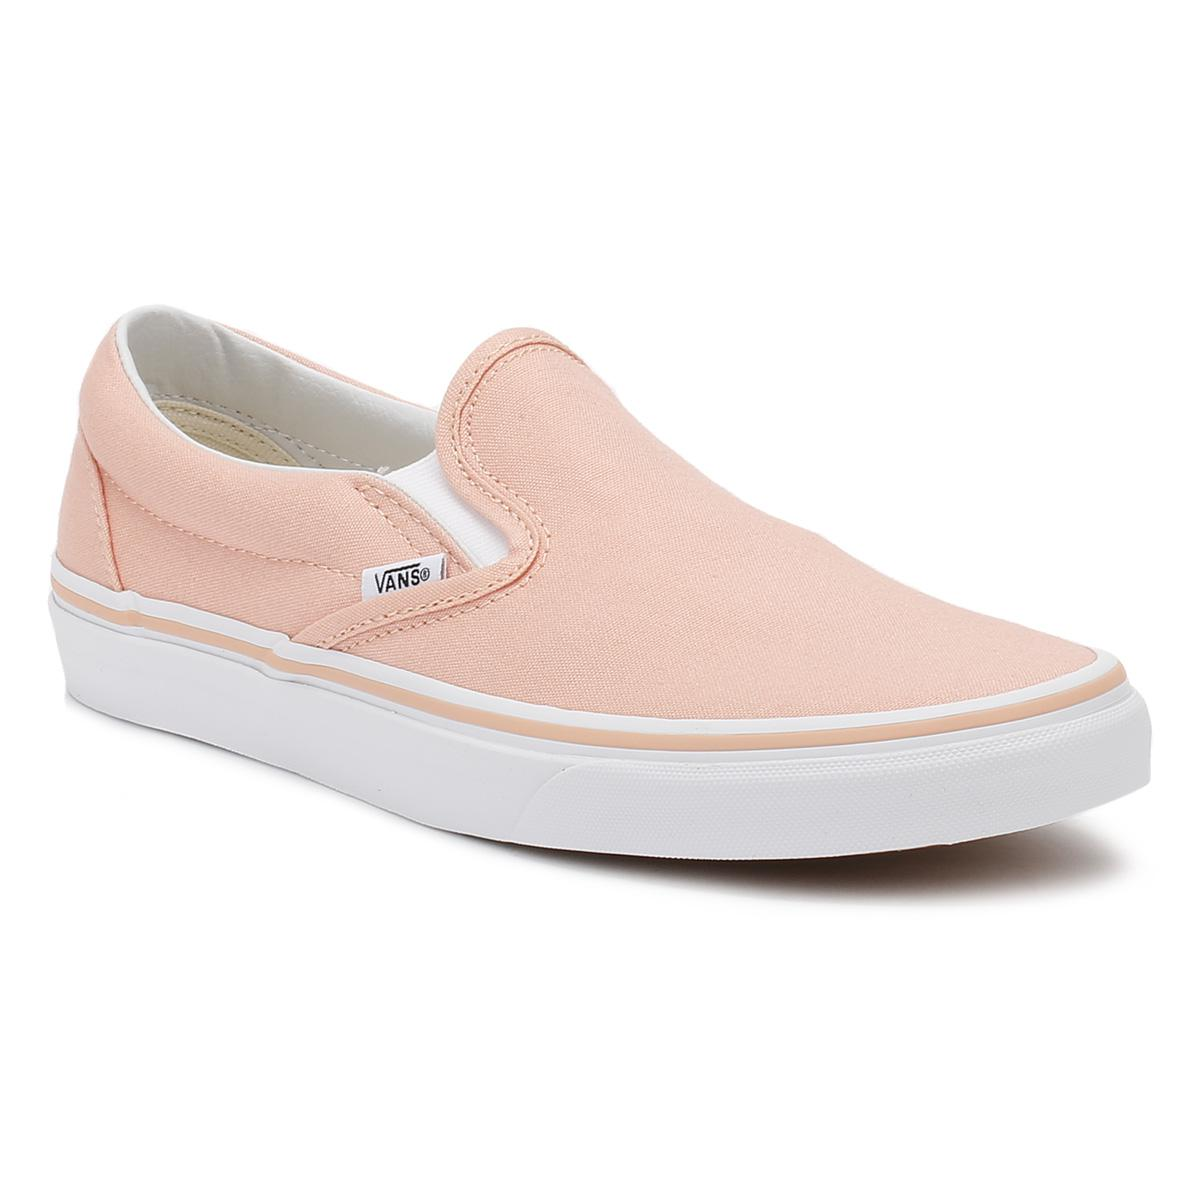 741e0f6f63becc Lyst - Vans Classic Slip-on Womens Tropical Peach True White Canvas ...